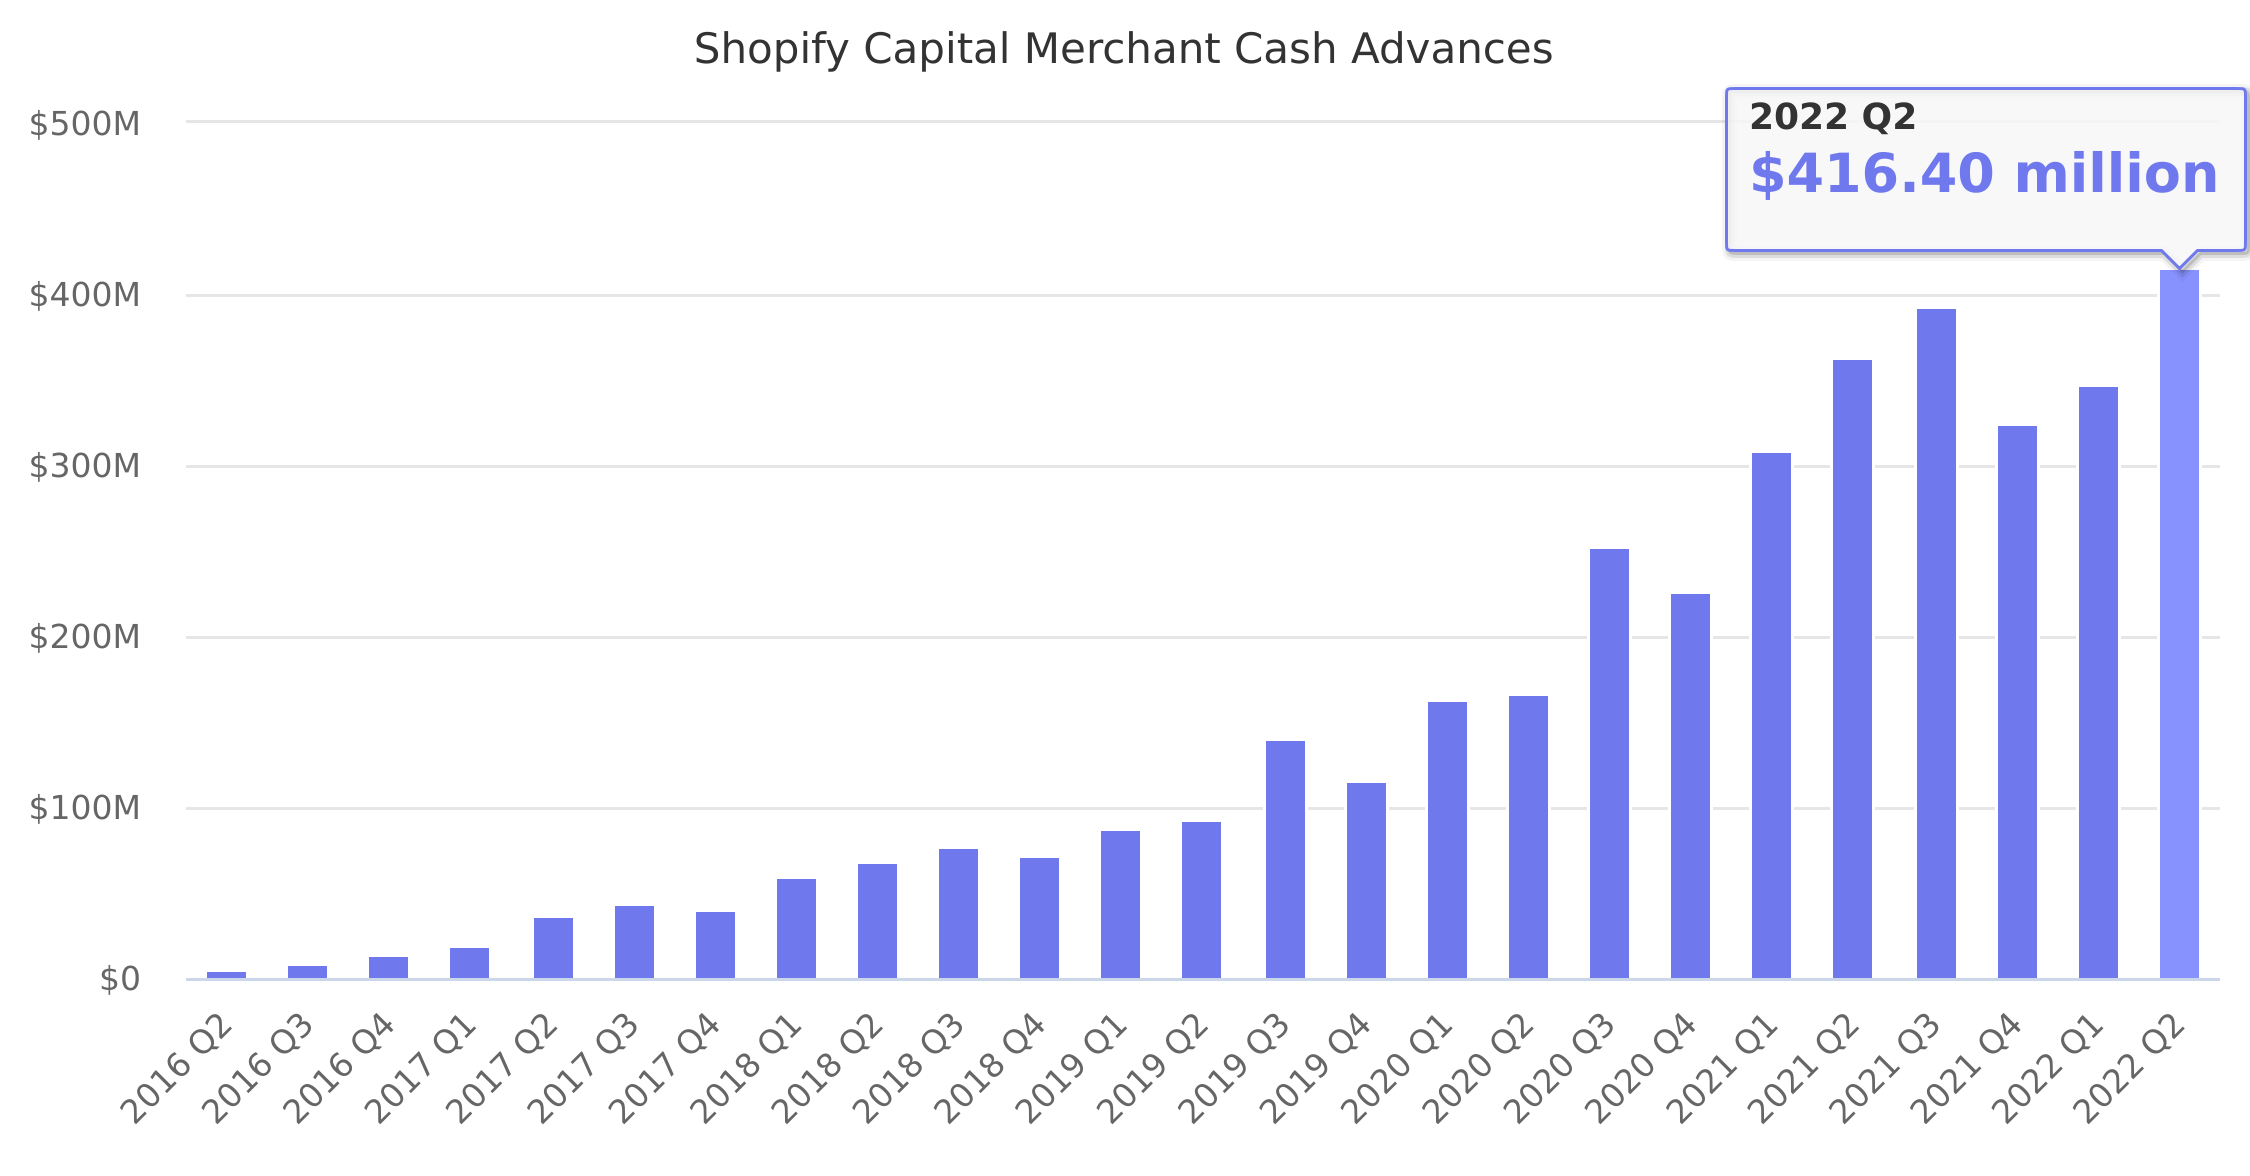 Shopify Capital Merchant Cash Advances 2016-2018